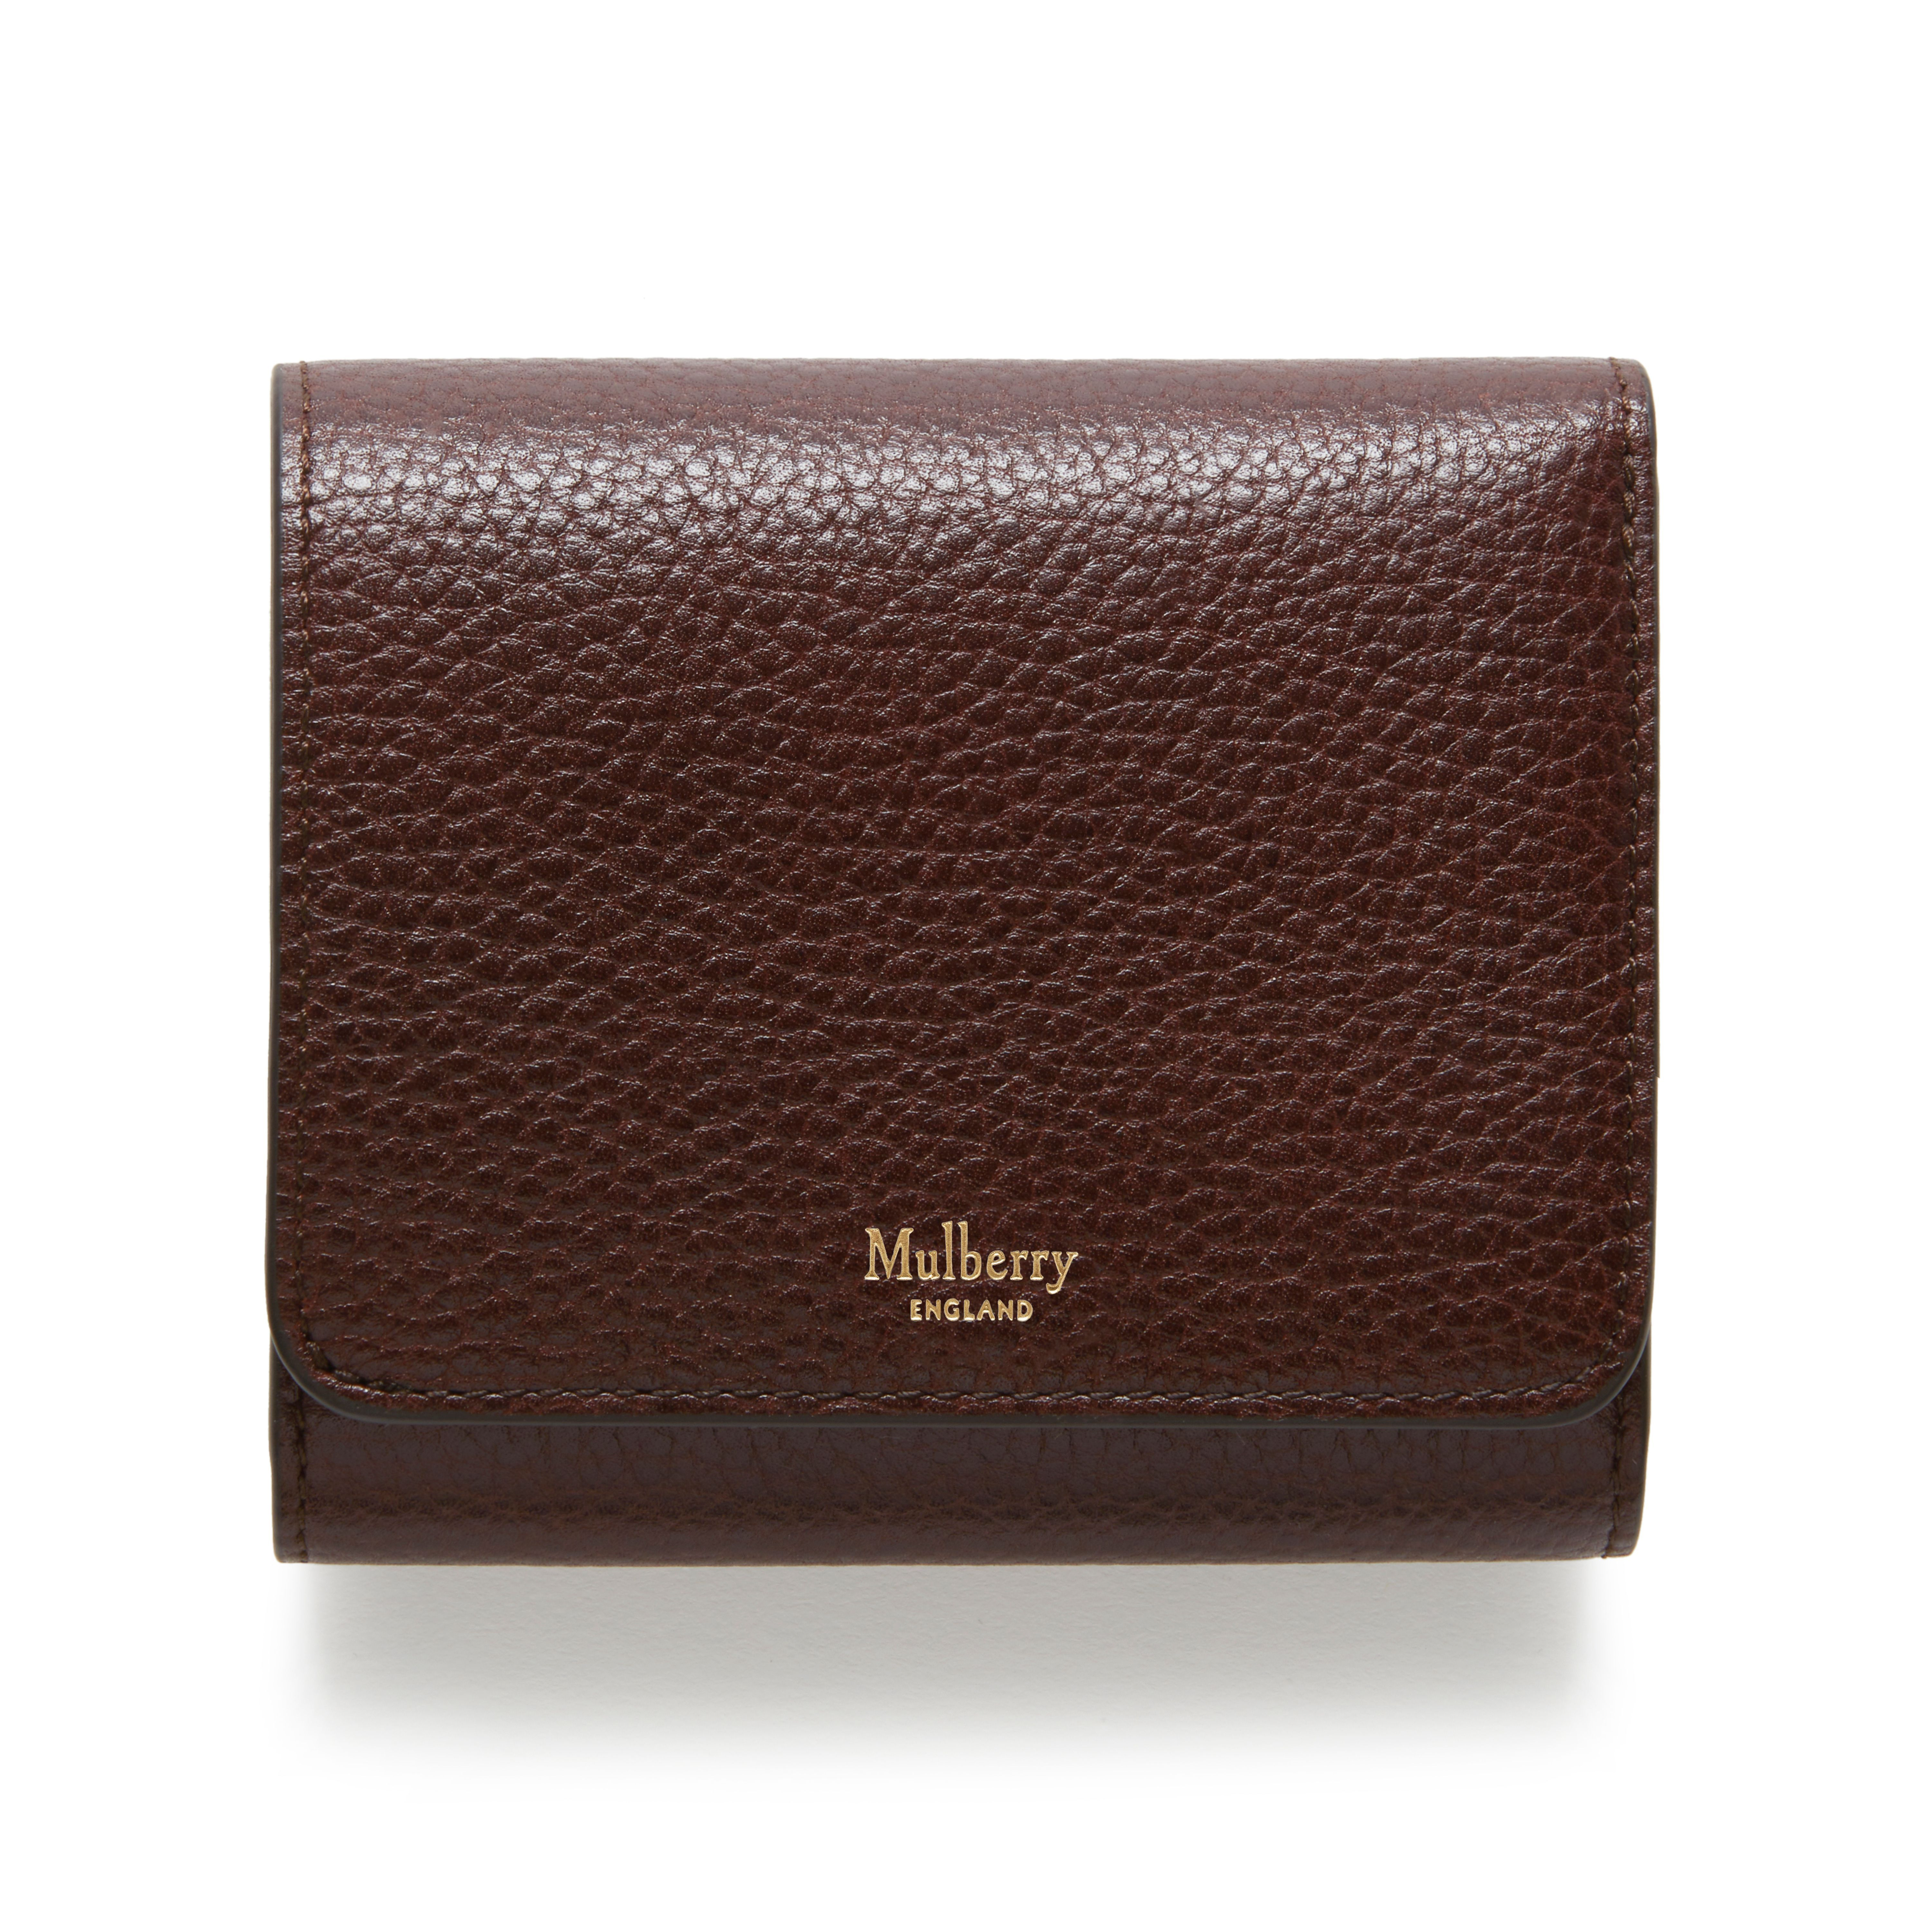 45807c7d13 Mulberry - Tri-fold Continental Wallet in Oxblood Natural Grain Leather